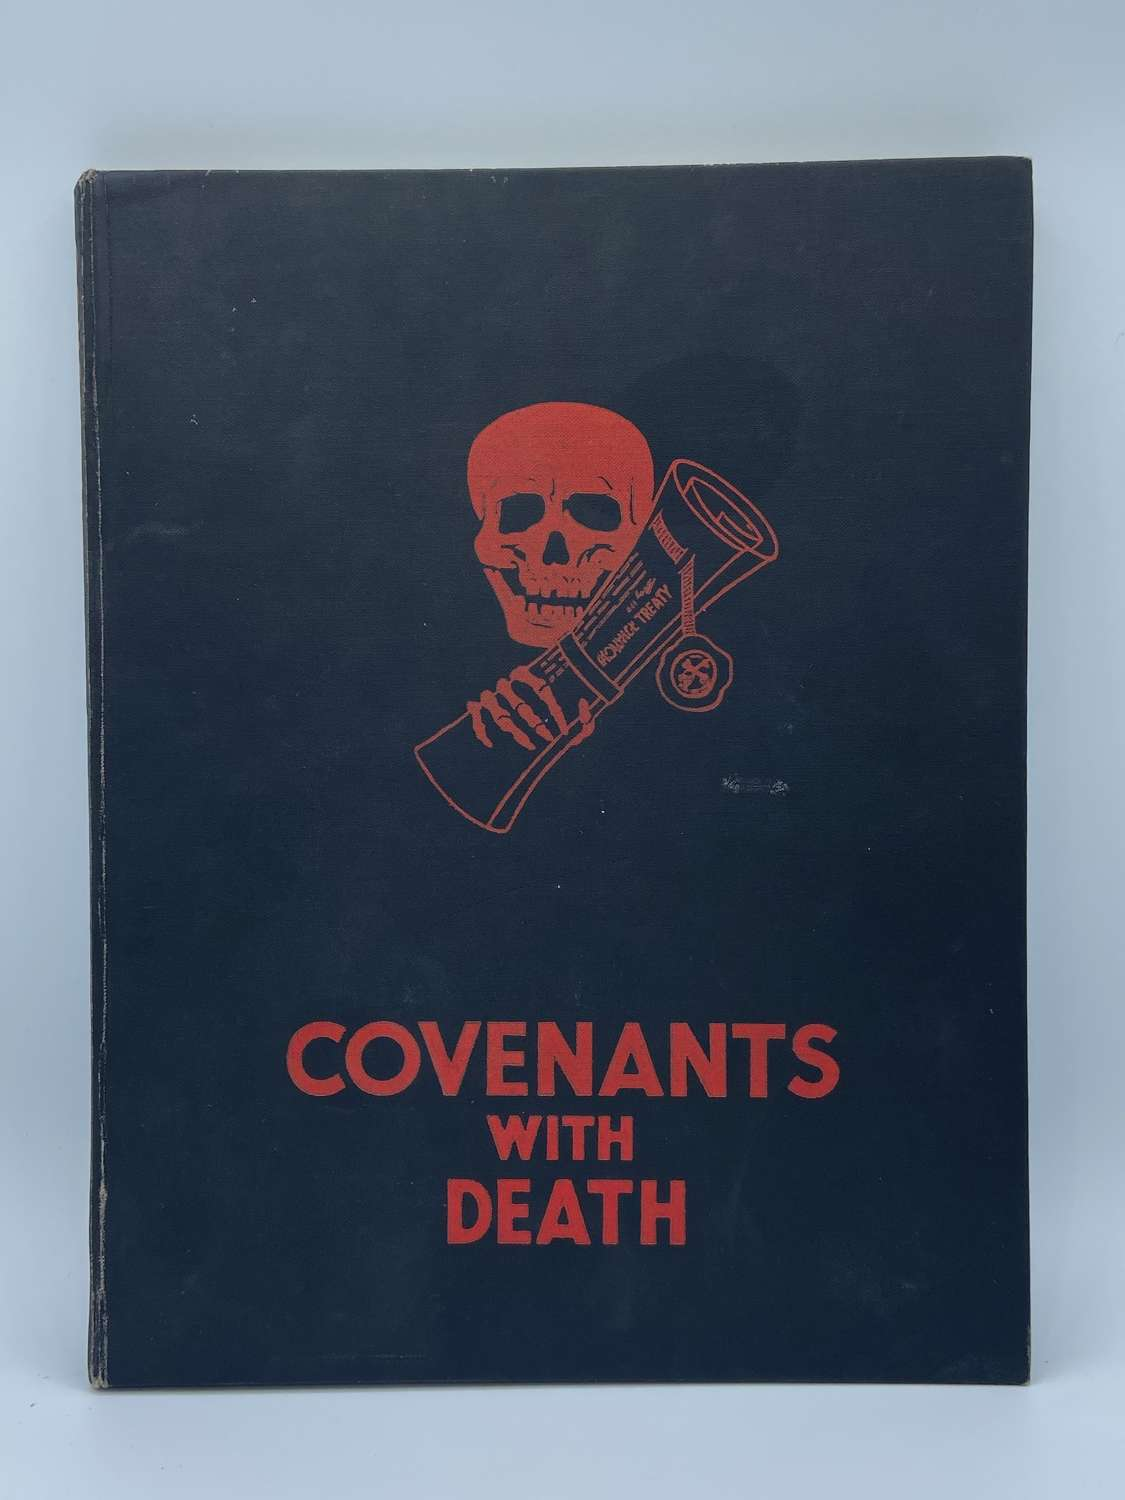 1934 Covenants Of Death Propaganda Book By The Daily Express